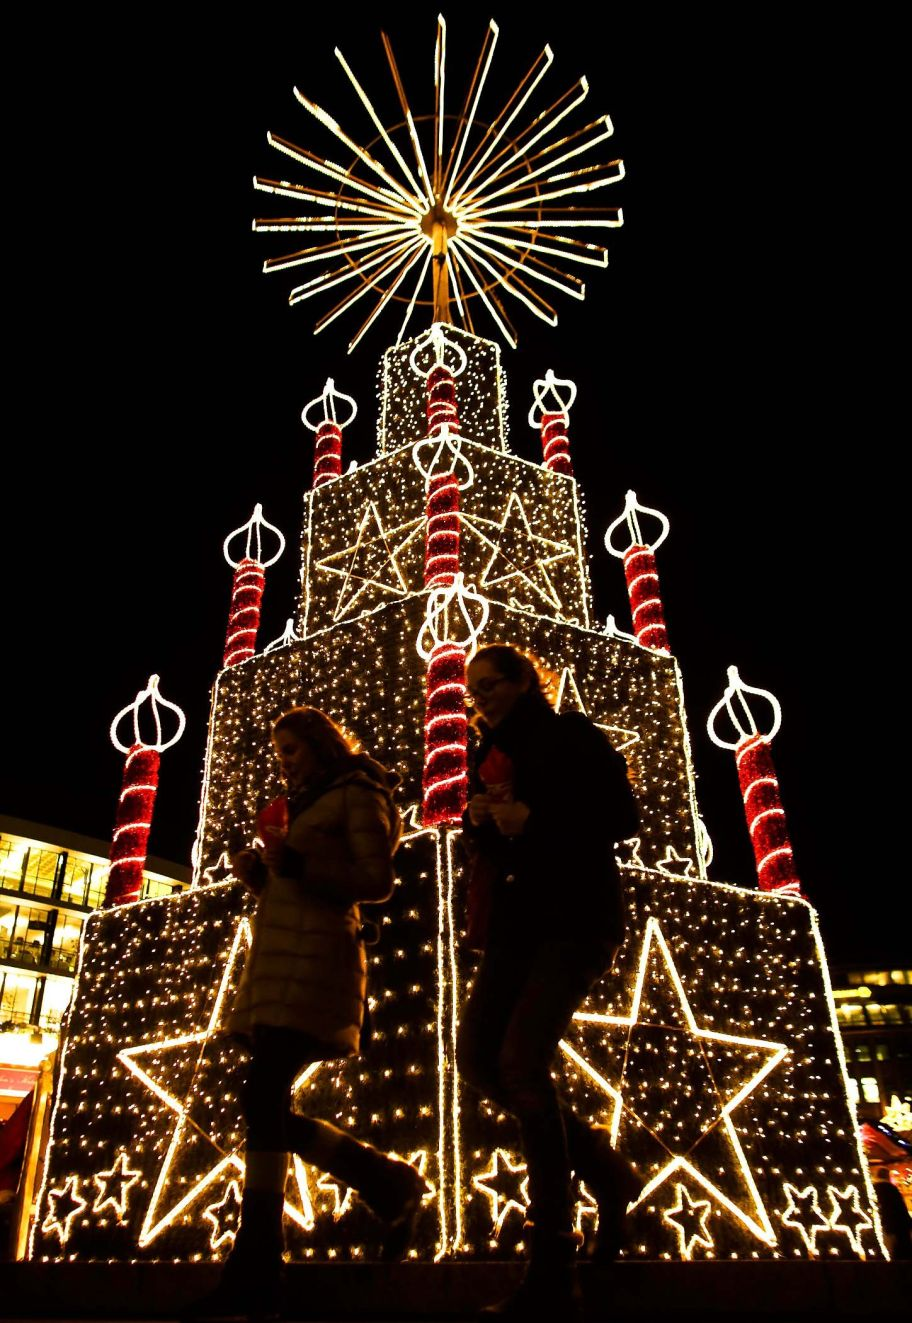 Two women on the background illumination of the Christmas fair in Berlin